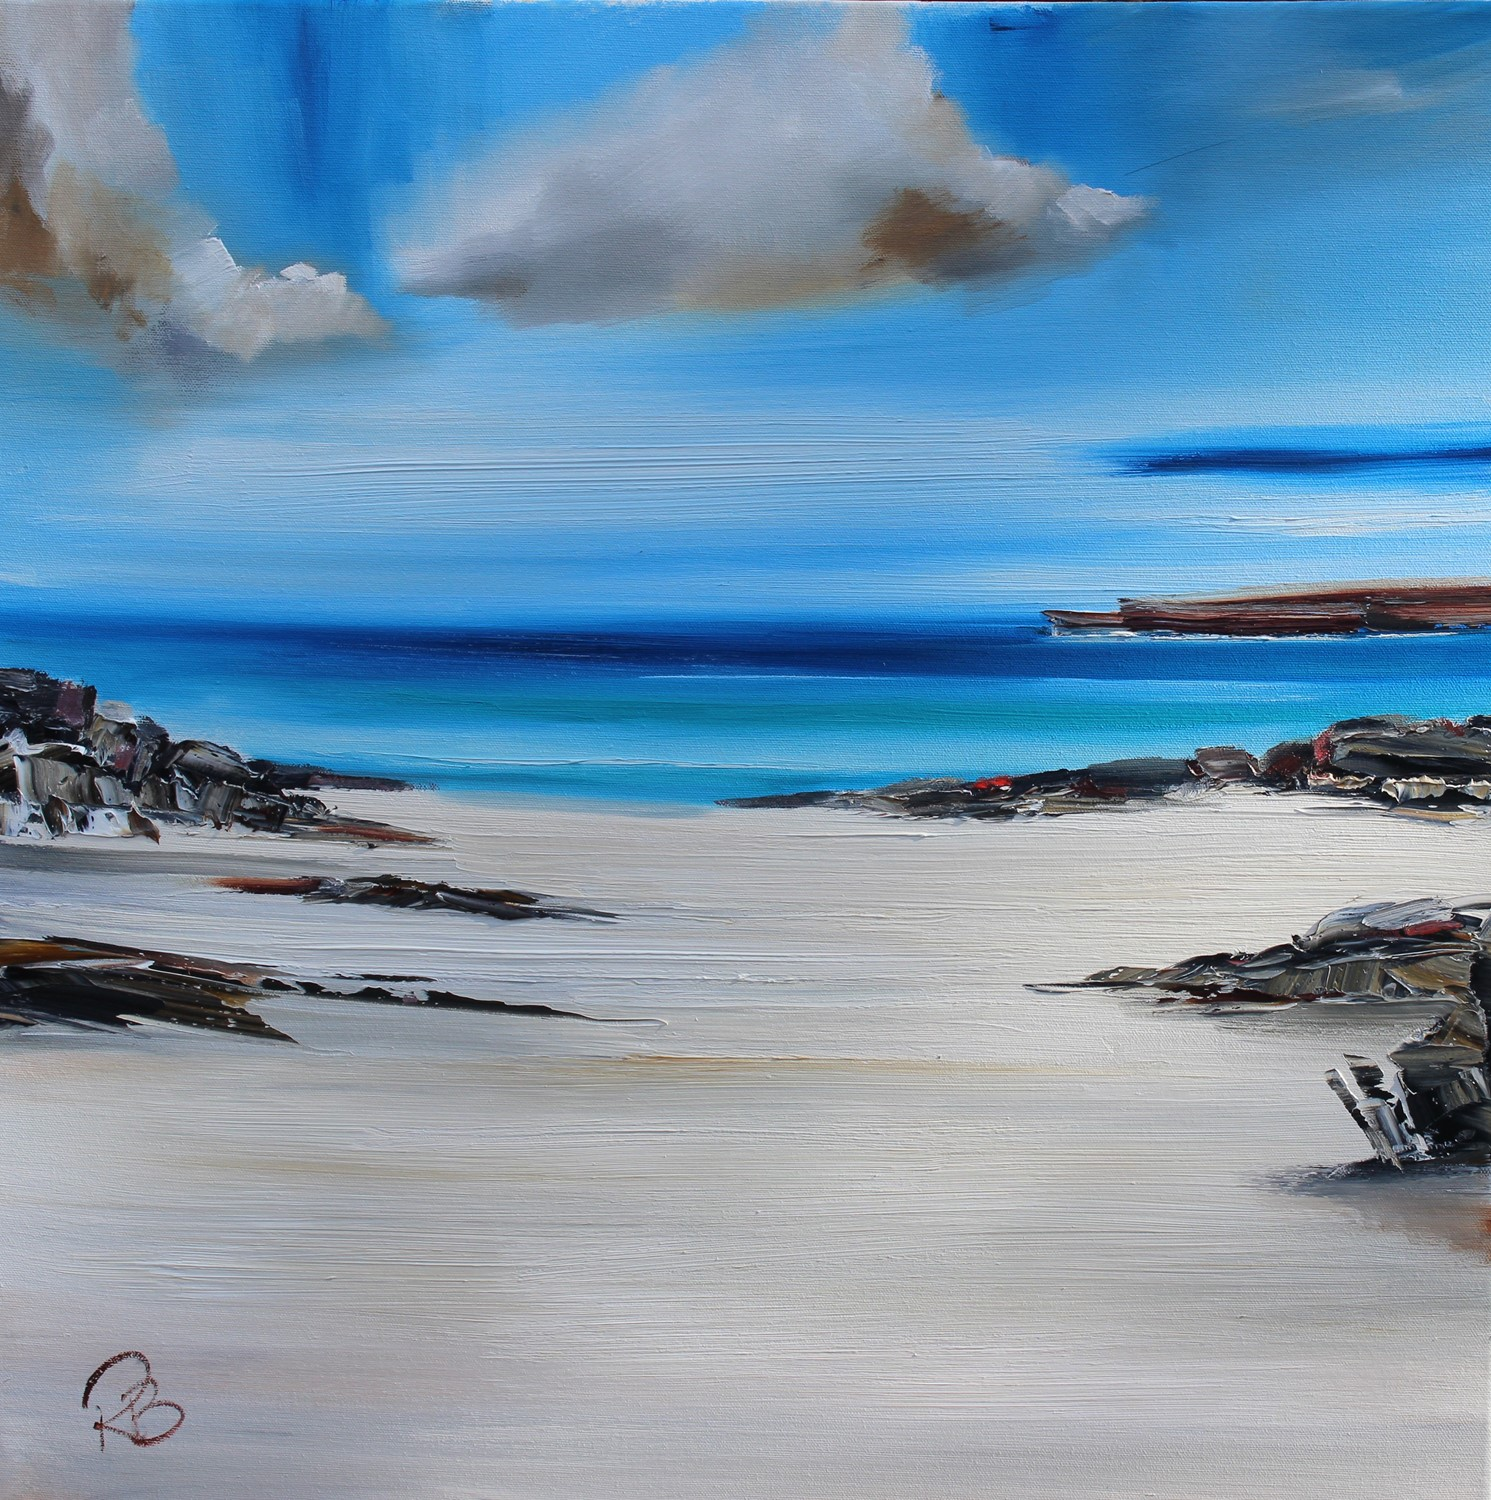 'Beached for the Day' by artist Rosanne Barr